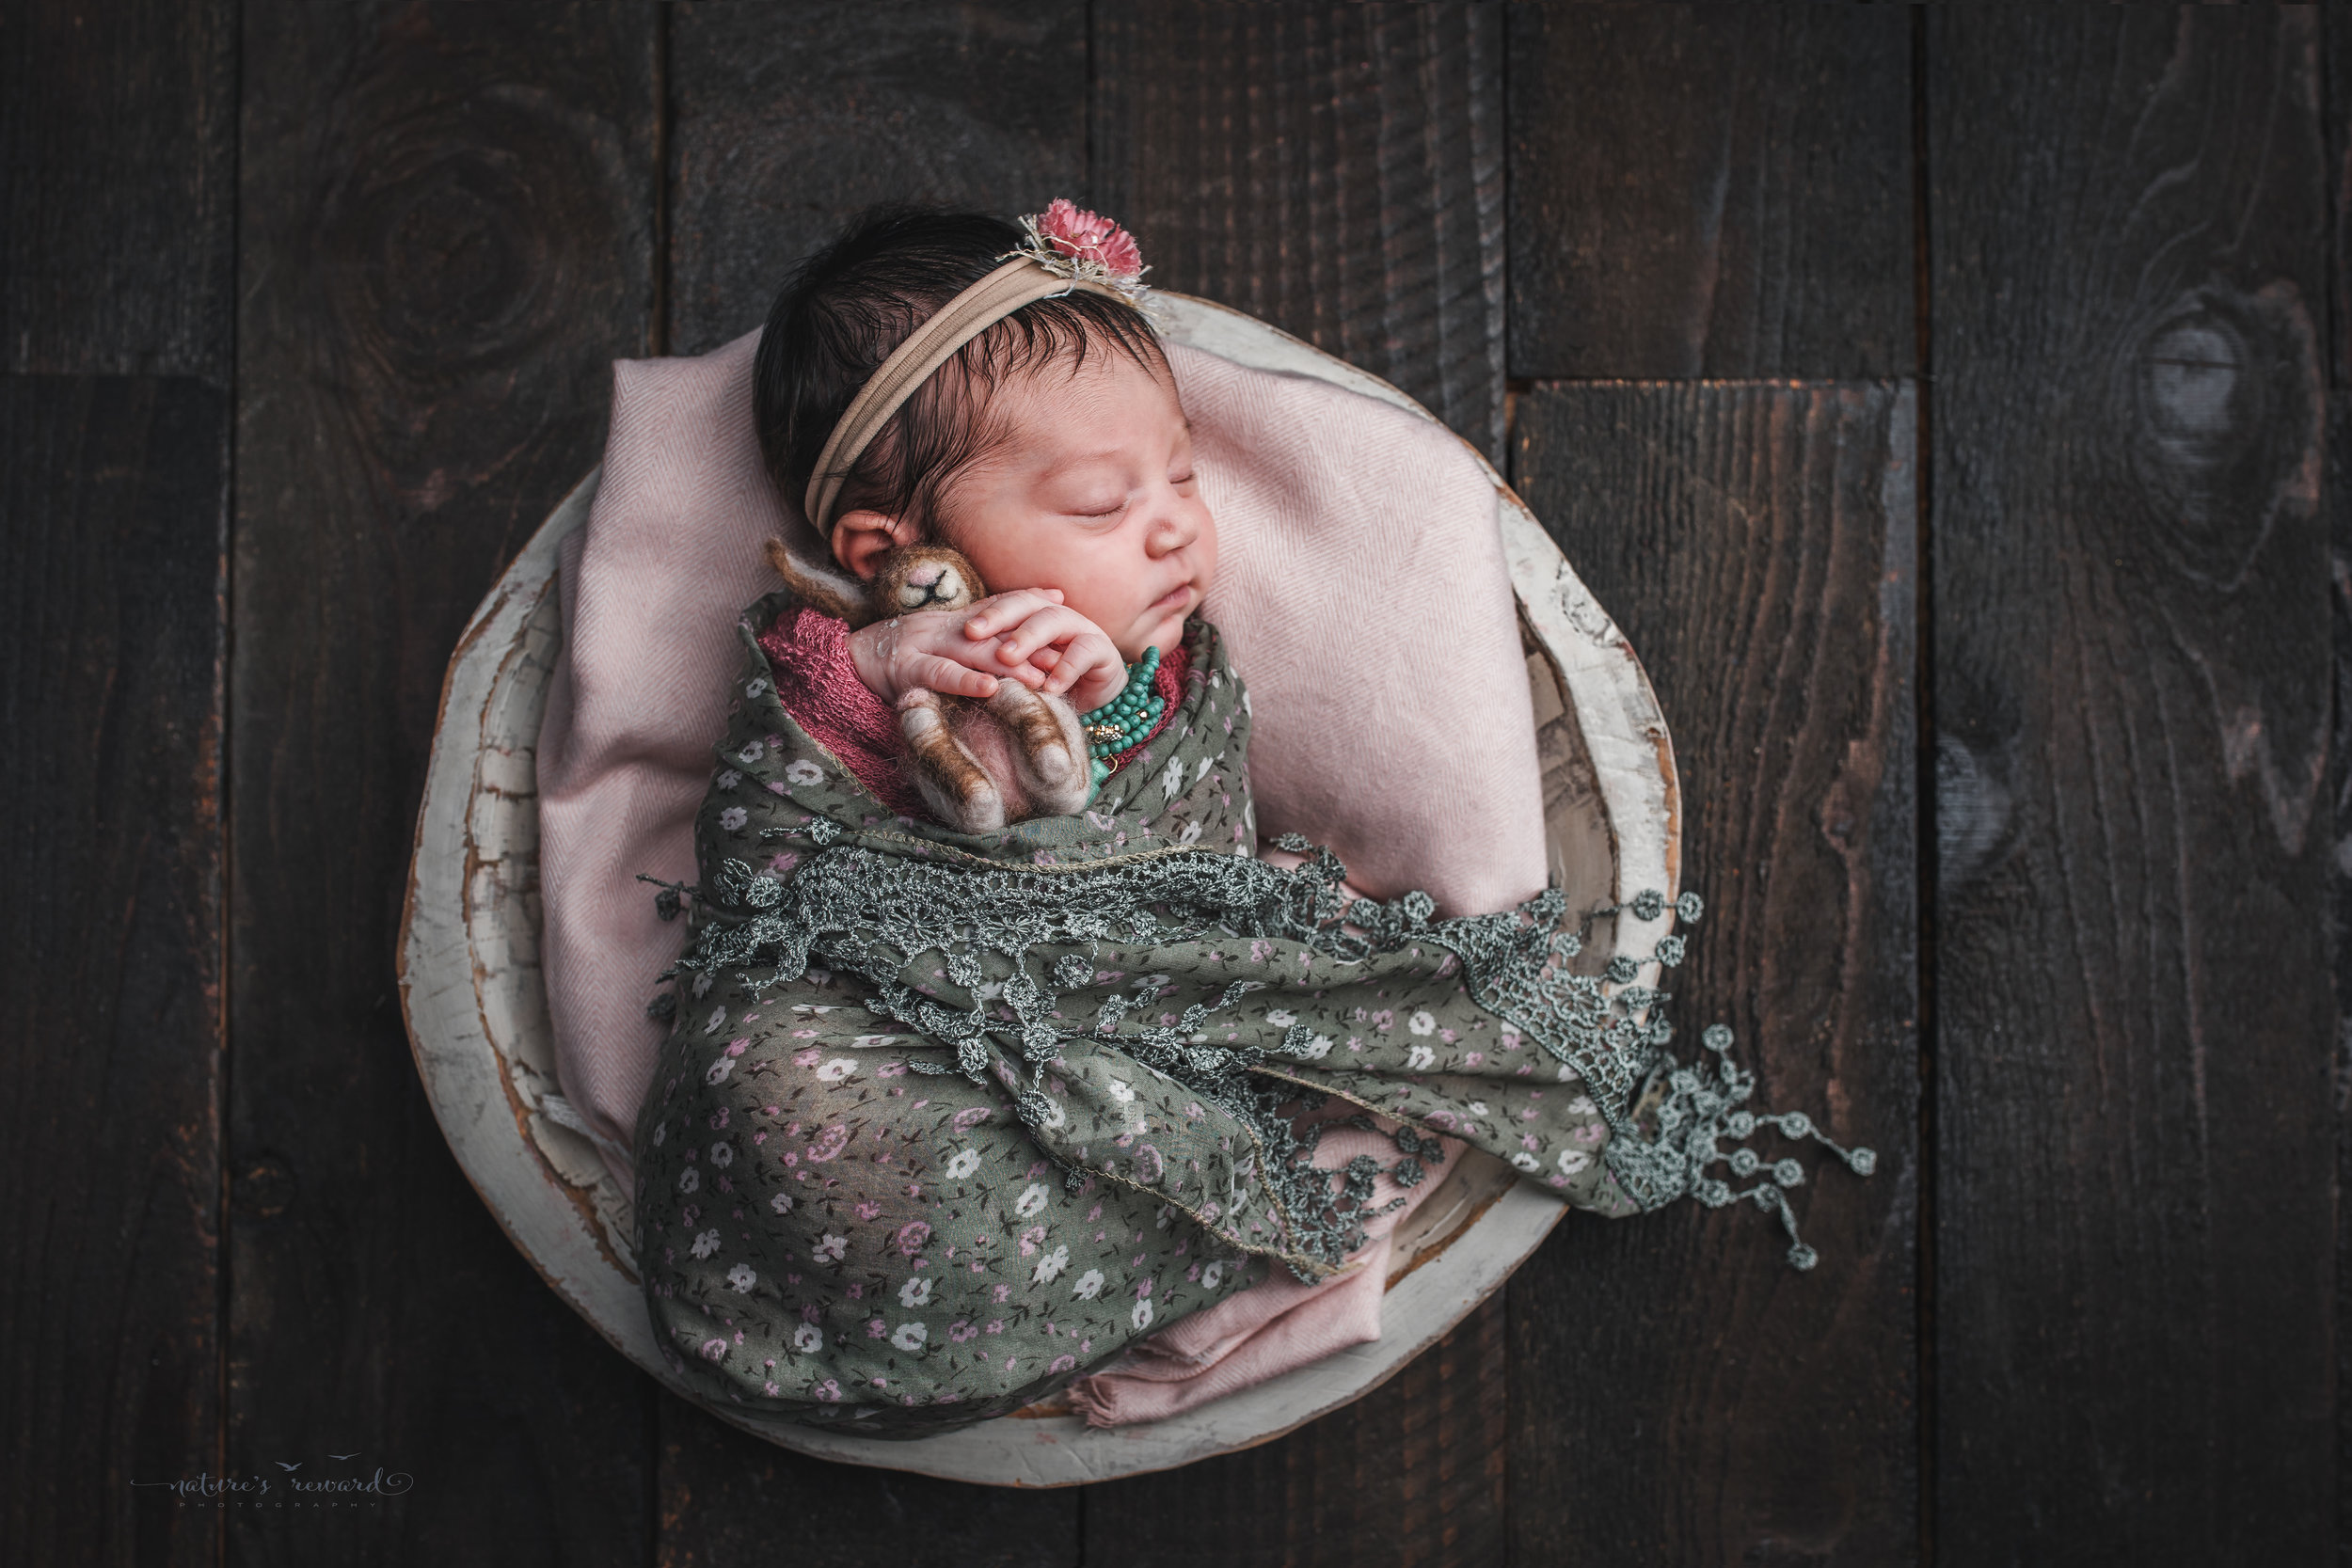 Newborn Baby girl in a wood bowl on a bed of pink wearing a floral green holding a bunny on a wood floor, a portrait by Nature's Reward Photography